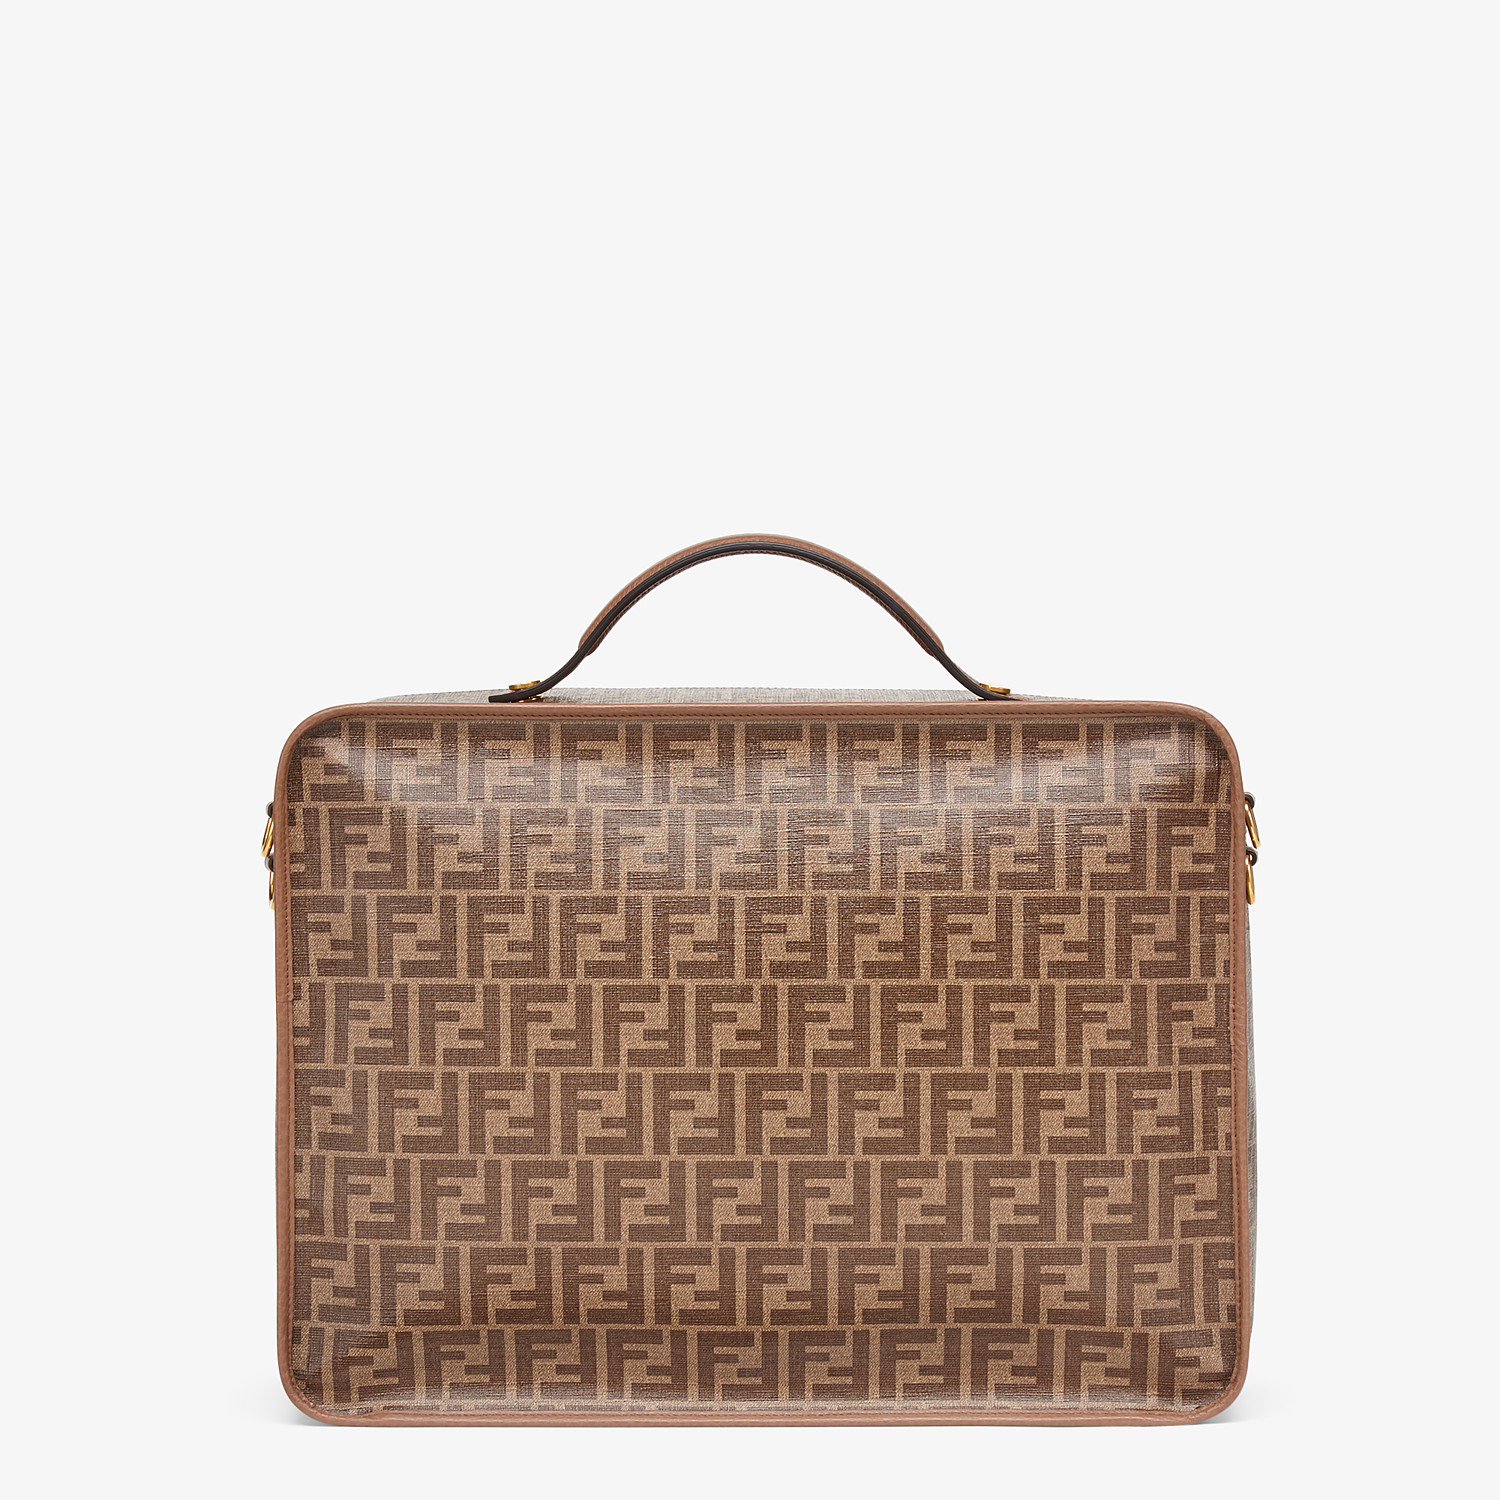 FENDI TRAVEL BAG MEDIUM - Large brown fabric bag - view 3 detail